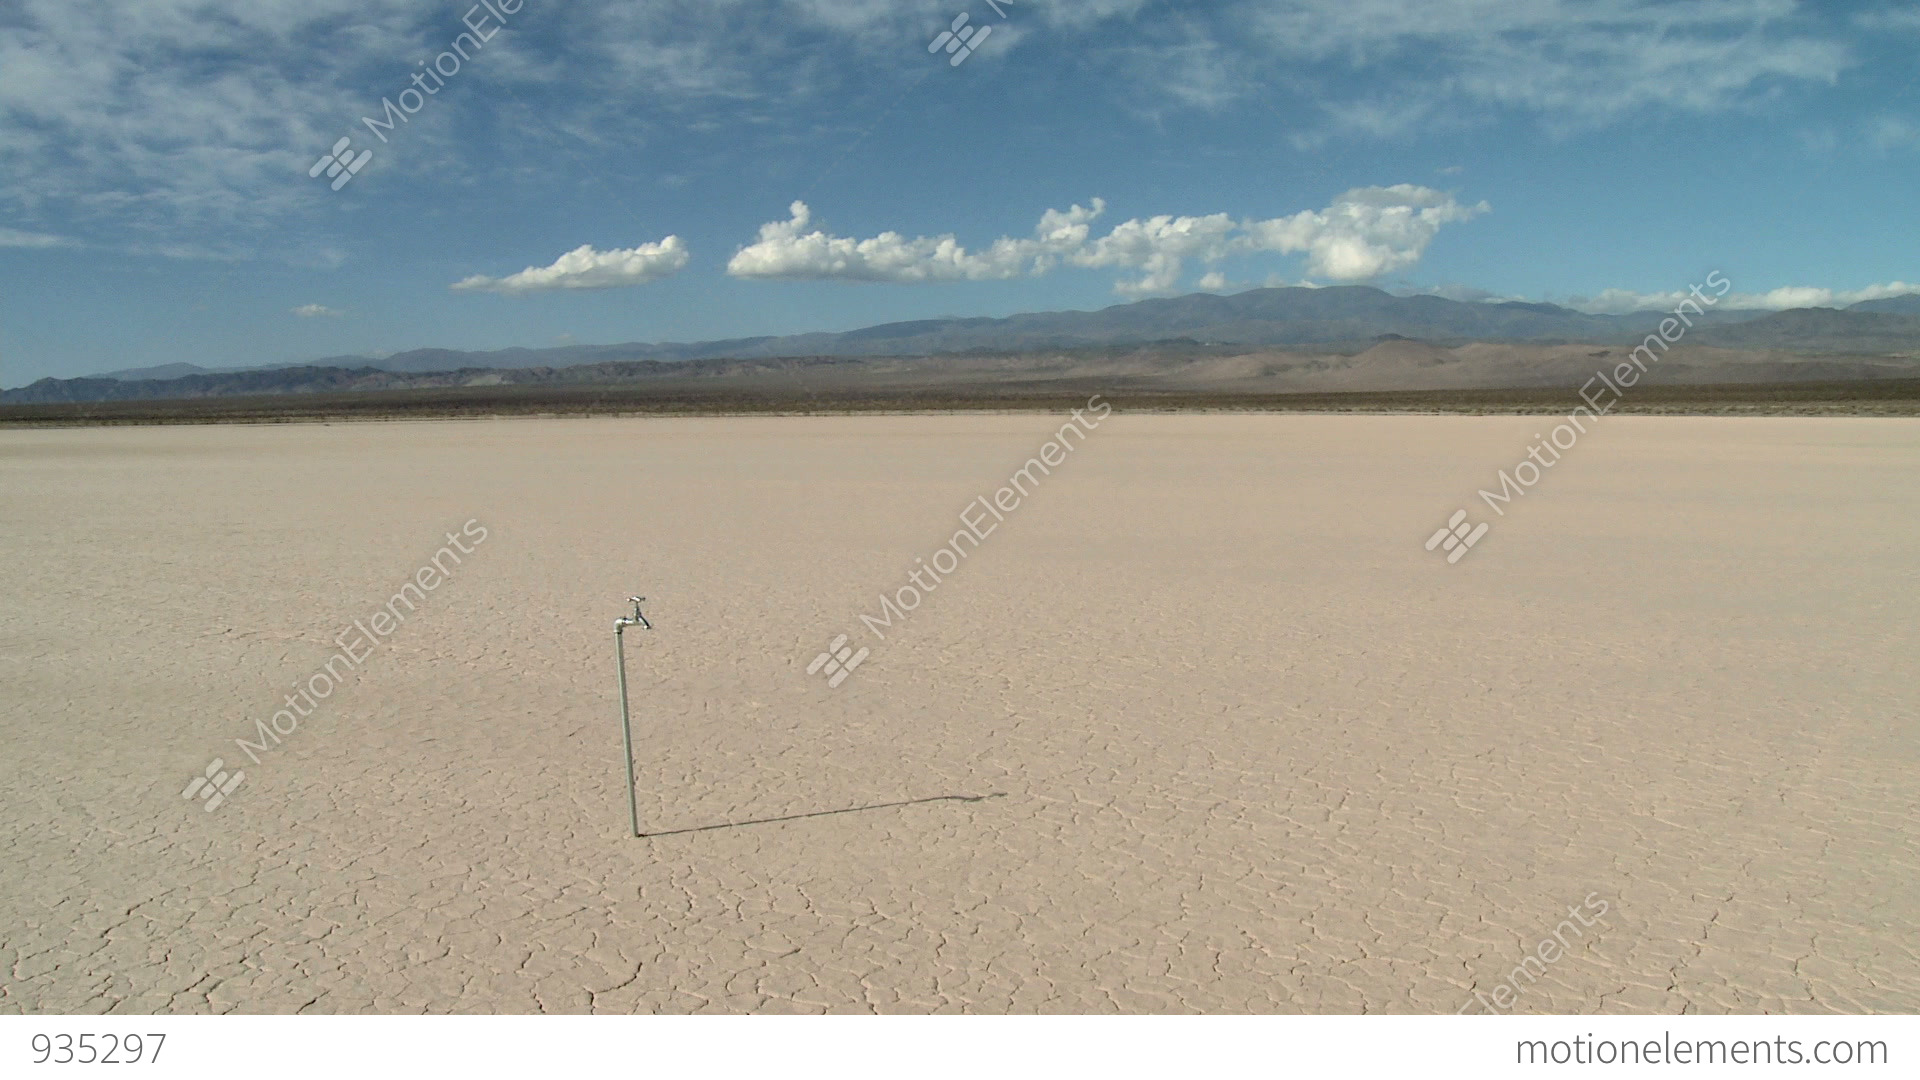 Man Using Faucet In Desert Landscape And Finding There Is No Water ...